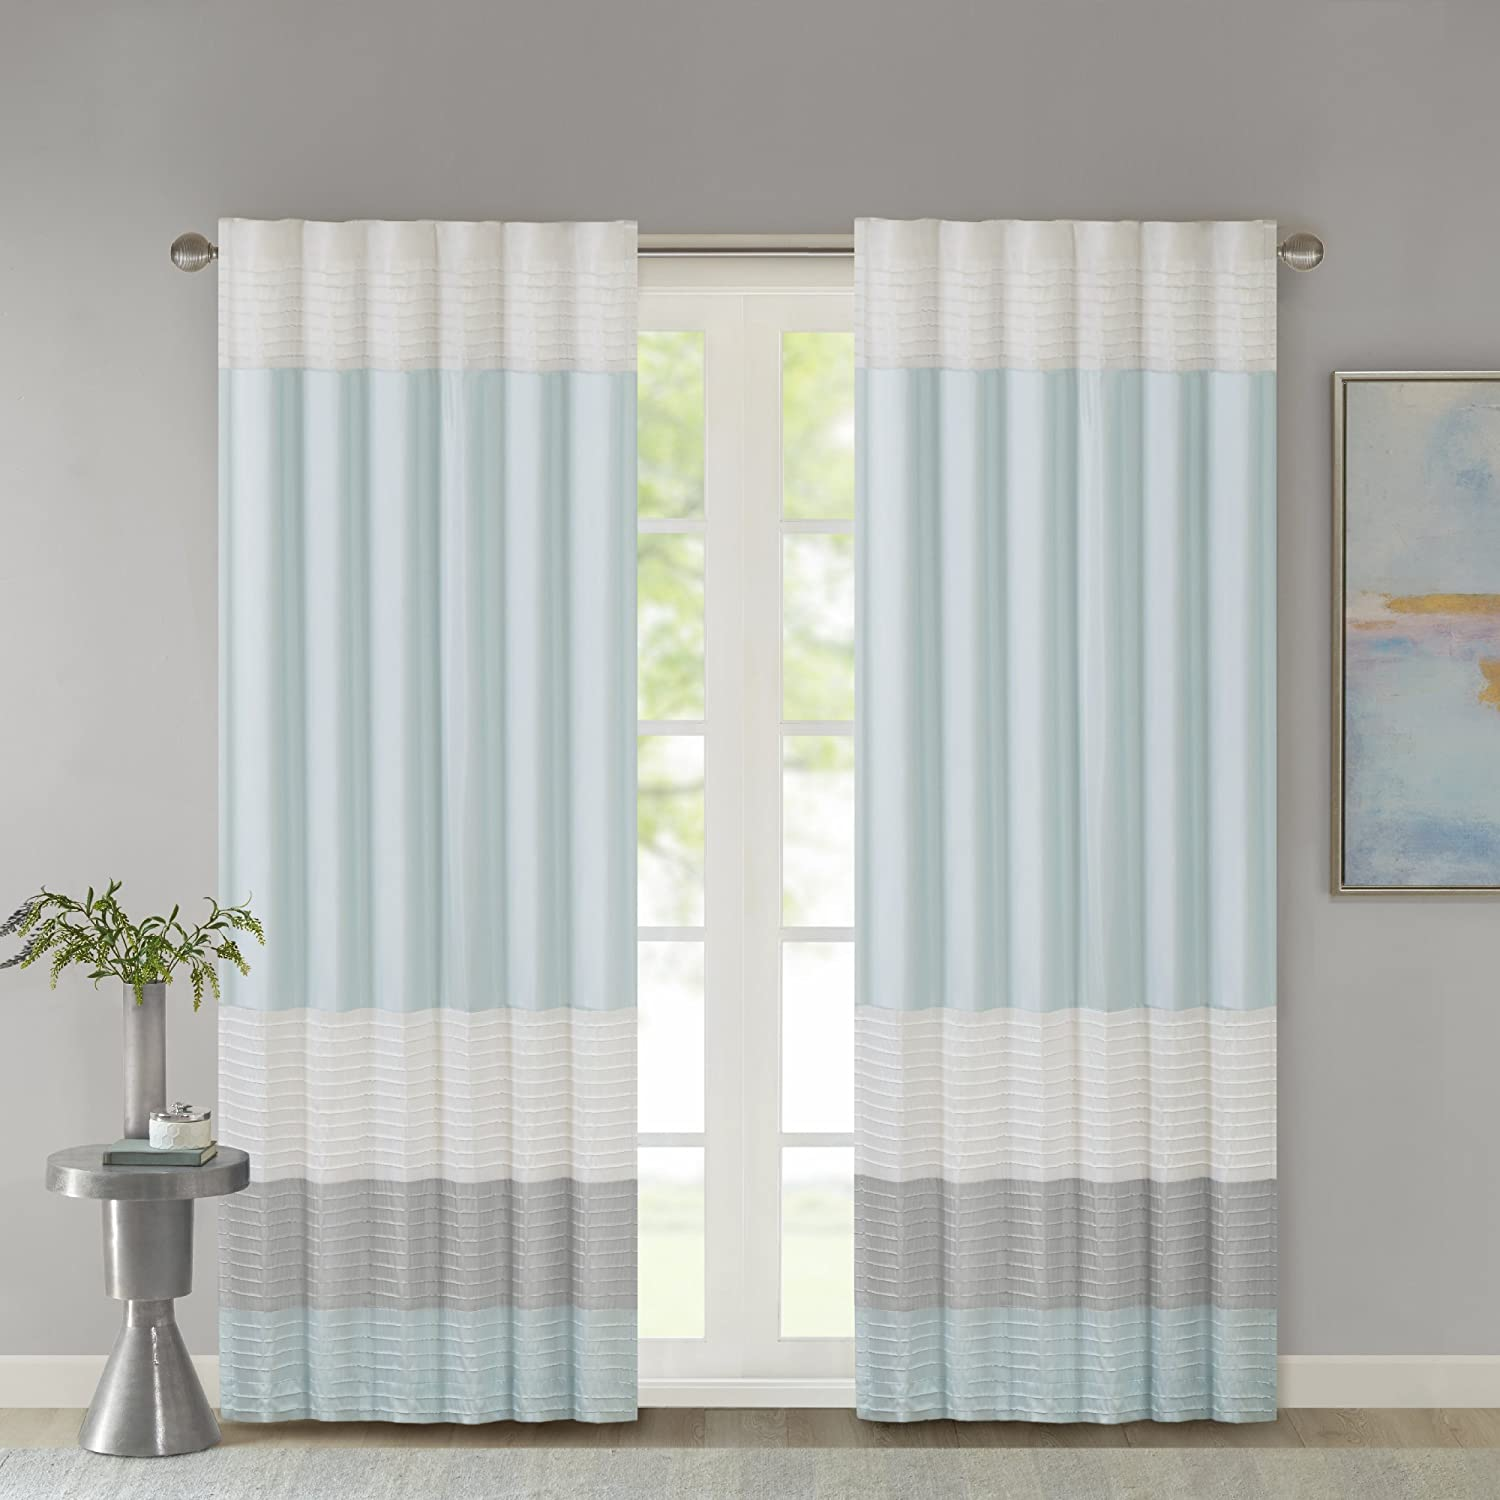 Madison Park Amherst Faux Silk Rod Pocket Curtain with Privacy Lining for Living Room, Window Drapes for Bedroom and Dorm, 50x84, Aqua